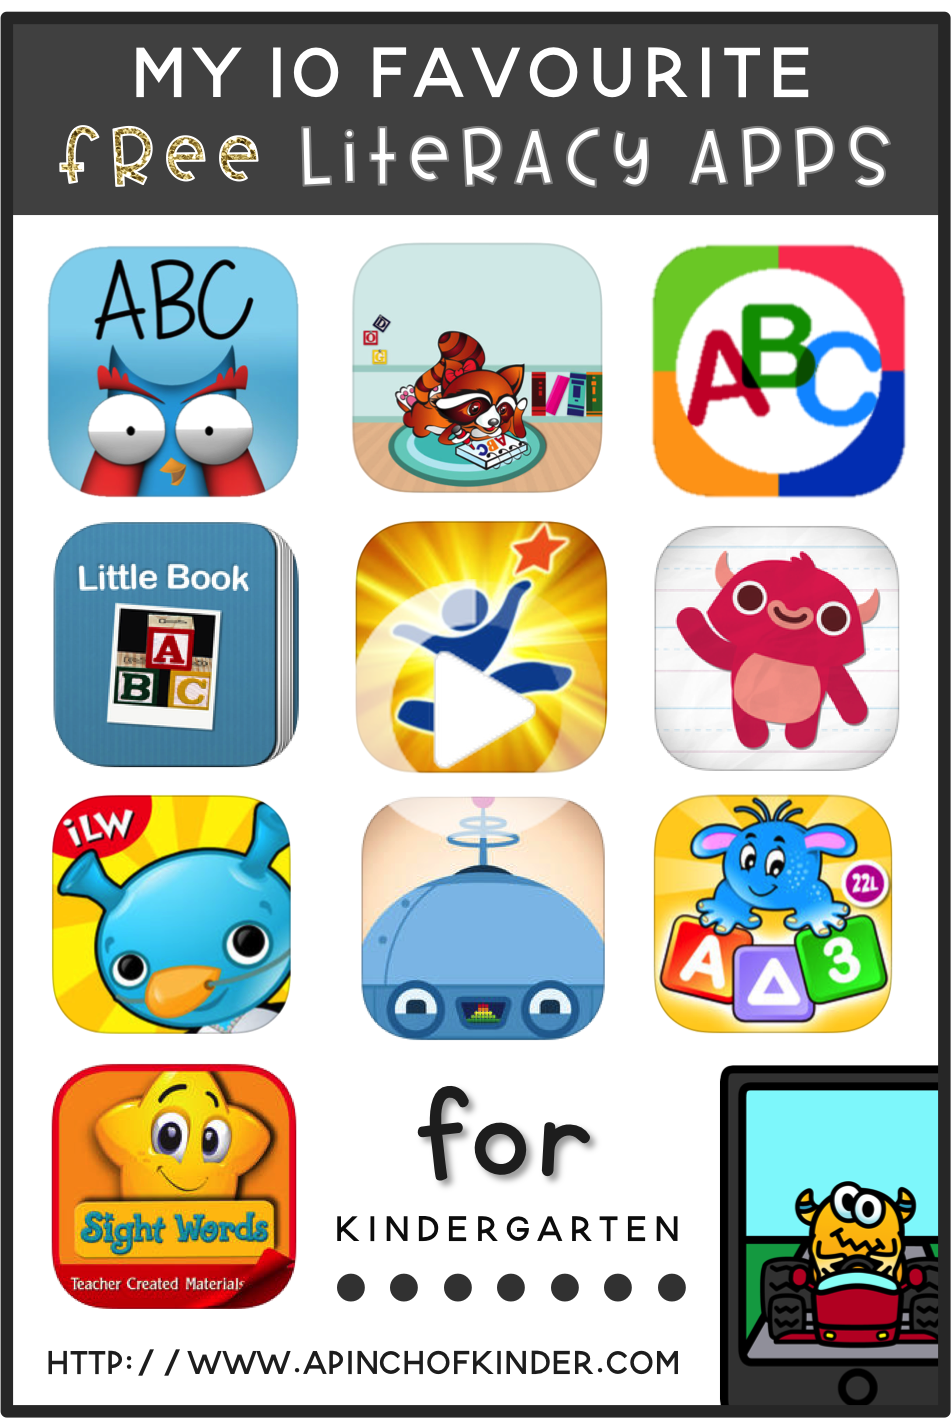 My 10 Favourite Free Literacy Apps For Kindergarten Literacy Apps Kids App Kindergarten Apps [ 1418 x 951 Pixel ]